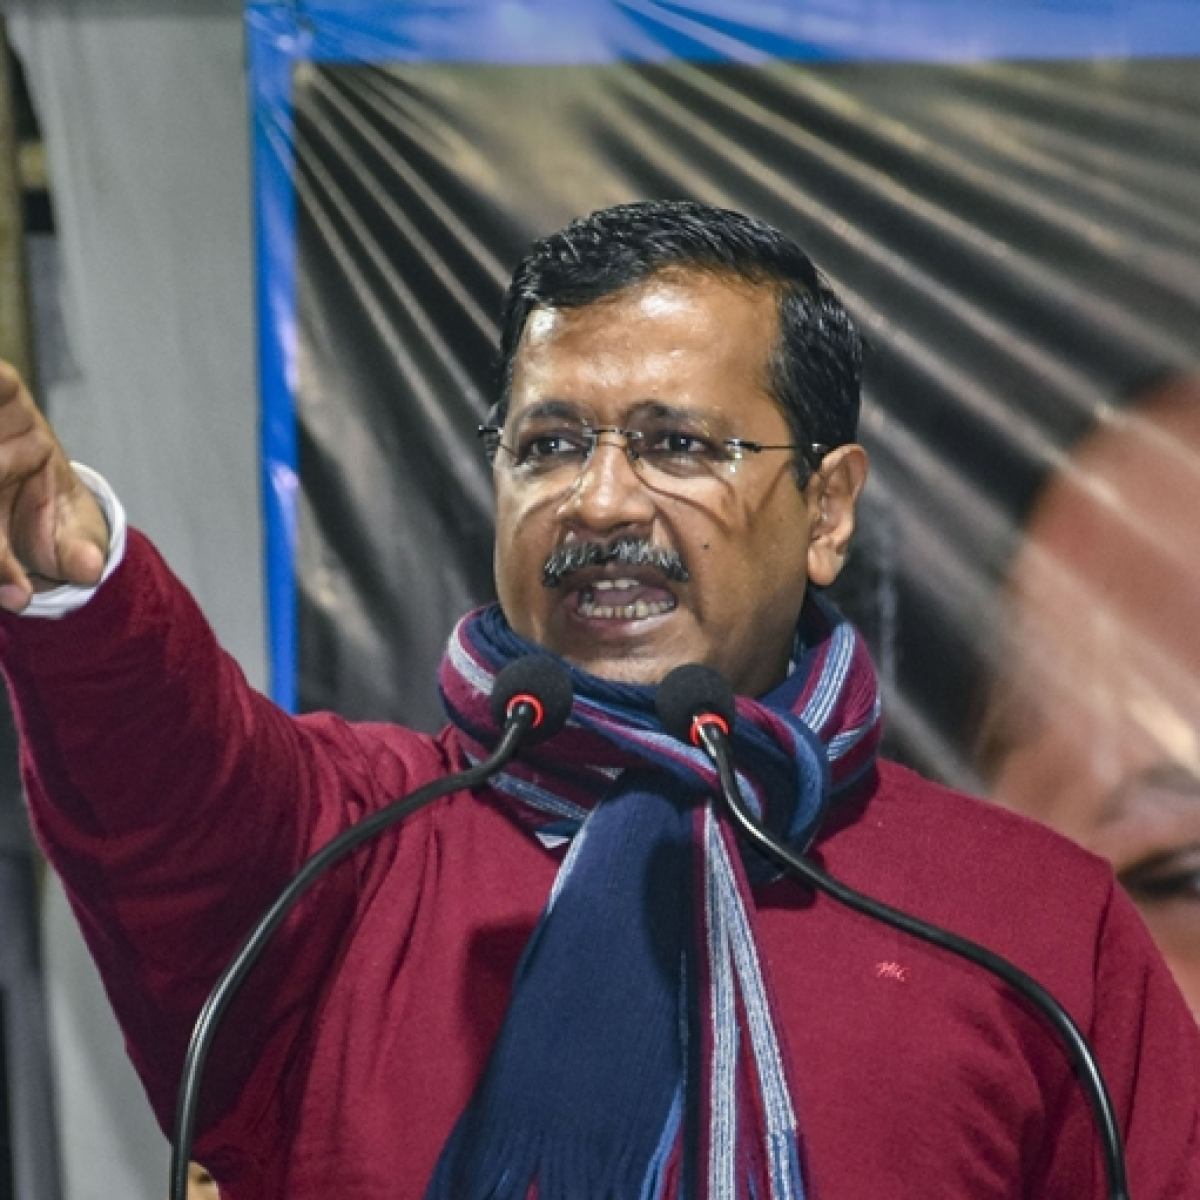 After days of silence on Delhi violence, Arvind Kejriwal says 'Army should be called in immediately'